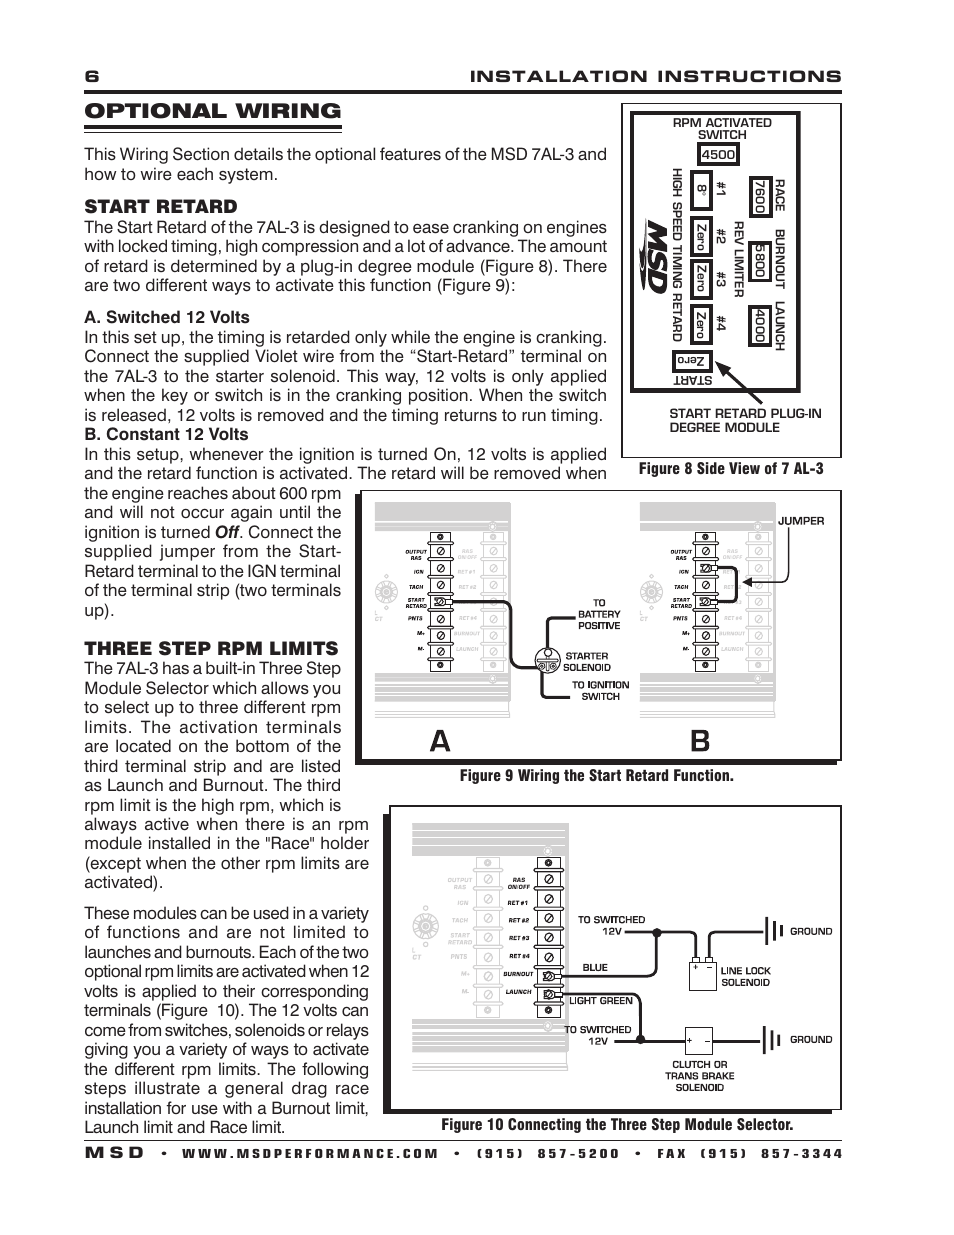 Mallory Mag Wiring Diagram | Wiring Liry on mallory parts catalog, mallory magneto, mallory wire,